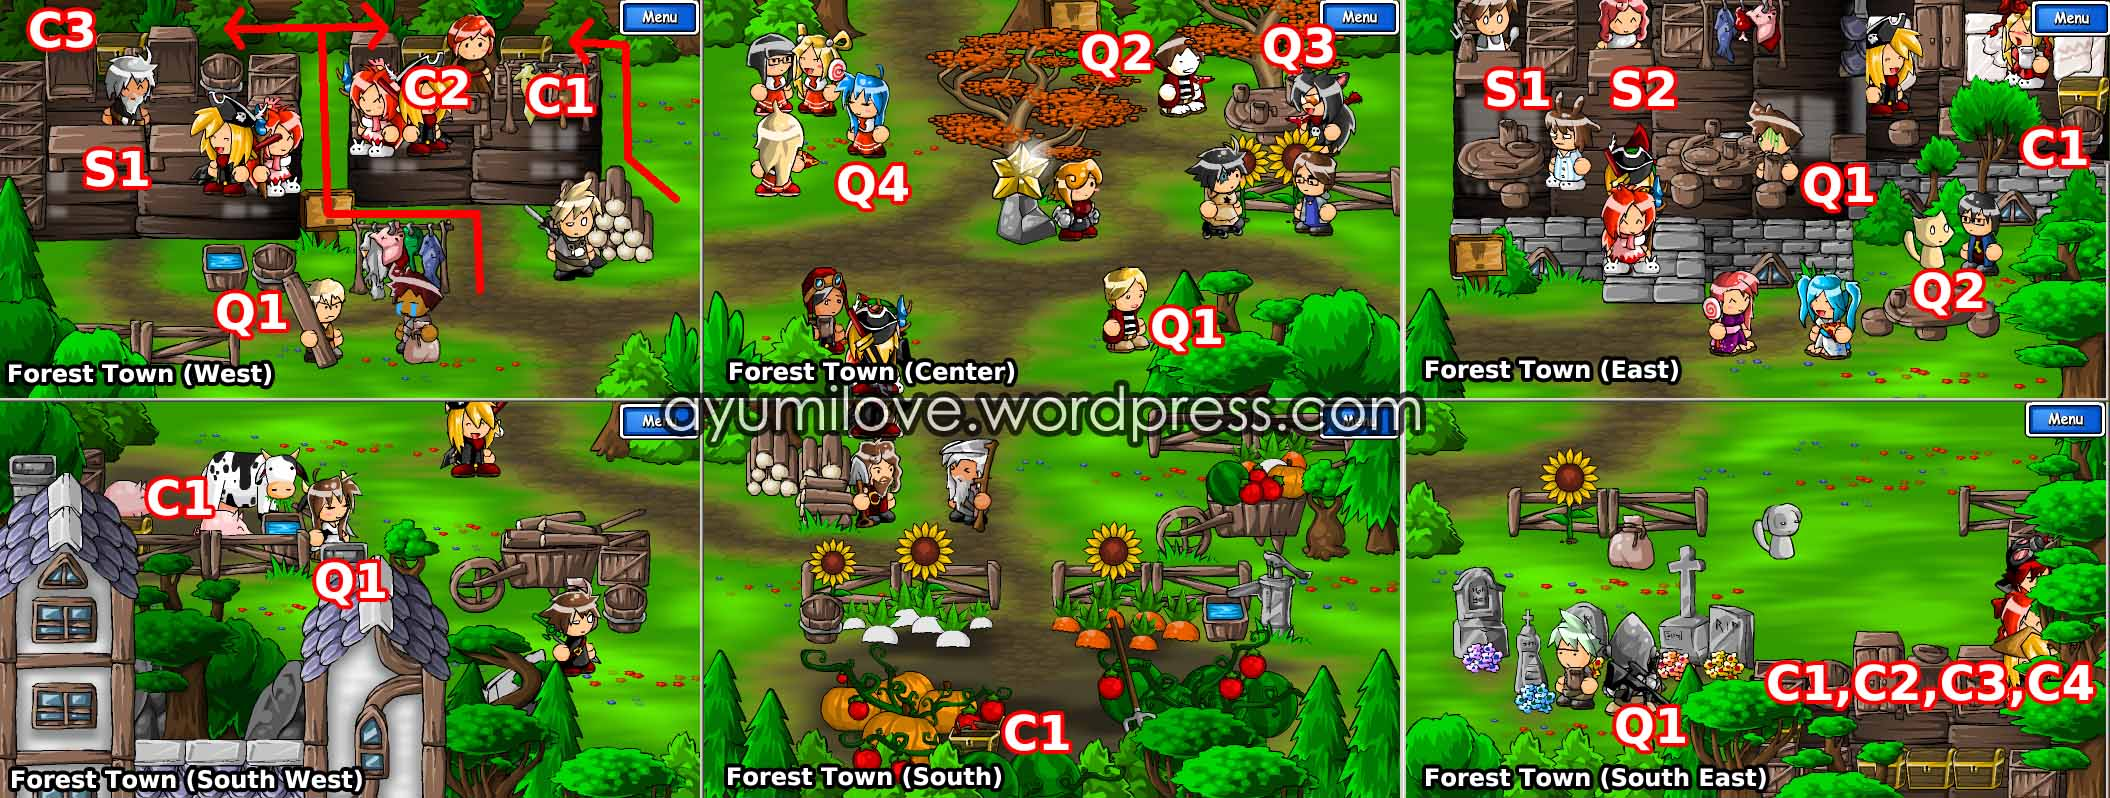 Epic Battle Fantasy 3 Vegetable Forest Town Map Walkthrough